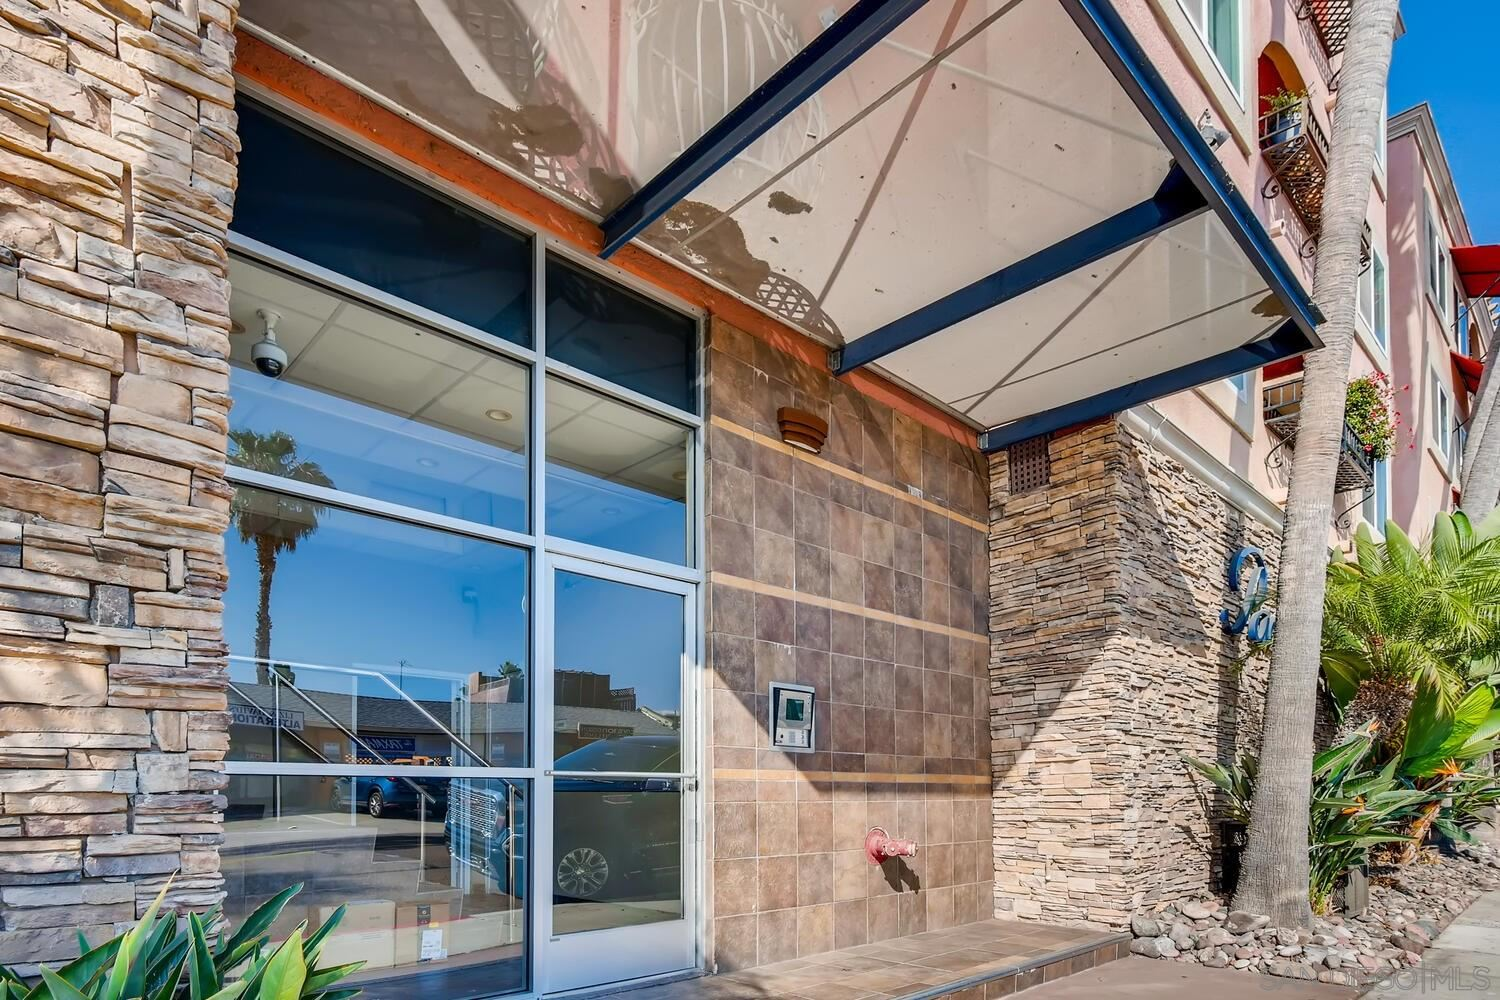 Photo for 840 Turquoise St #102, San Diego, CA 92109 (MLS # 200049699)